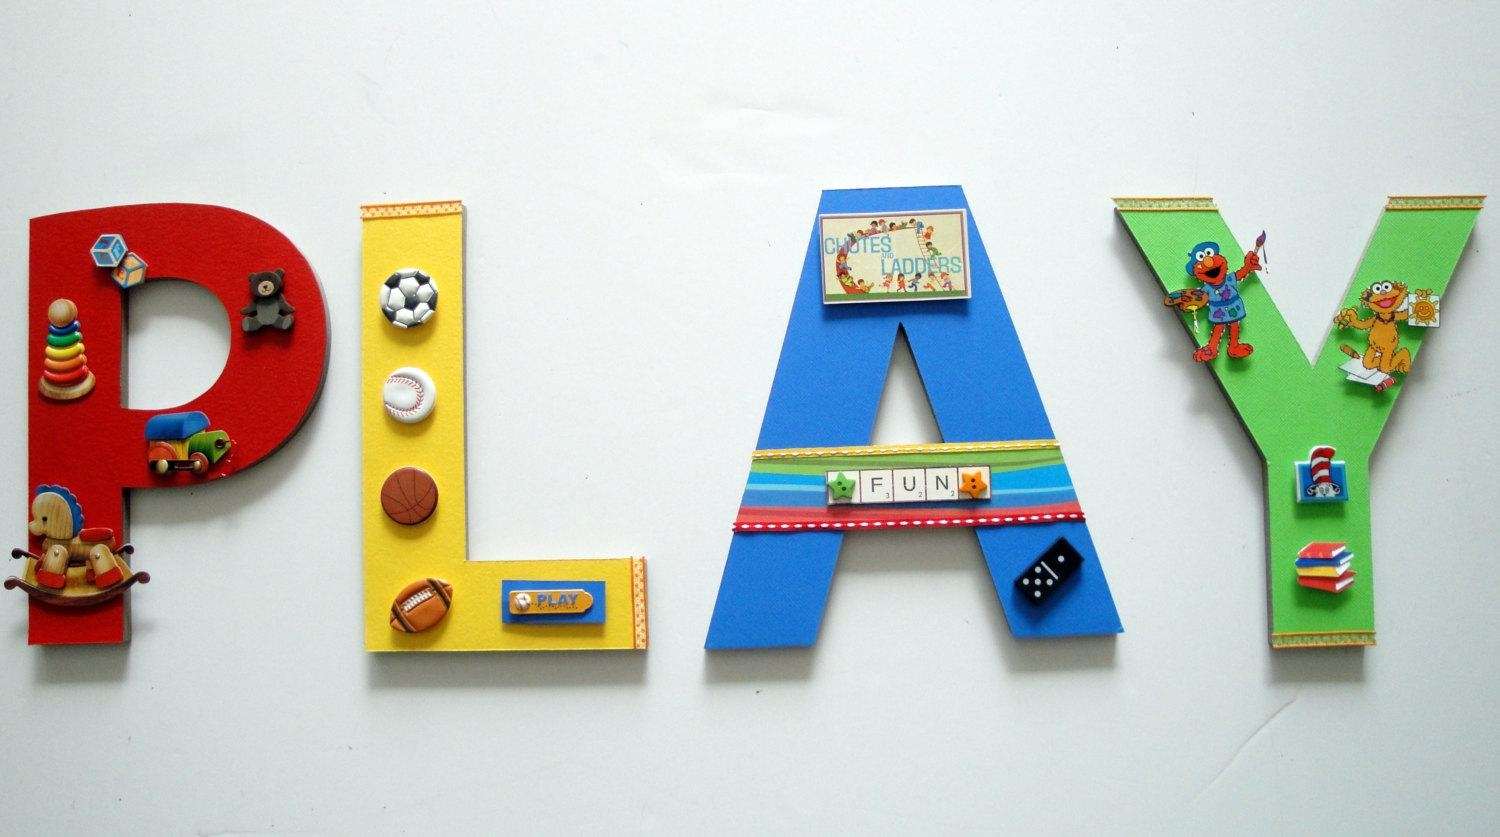 Playroom Wall Letters Playroom Wall Art Toys And Games Wall With Playroom Wall Art (View 5 of 20)